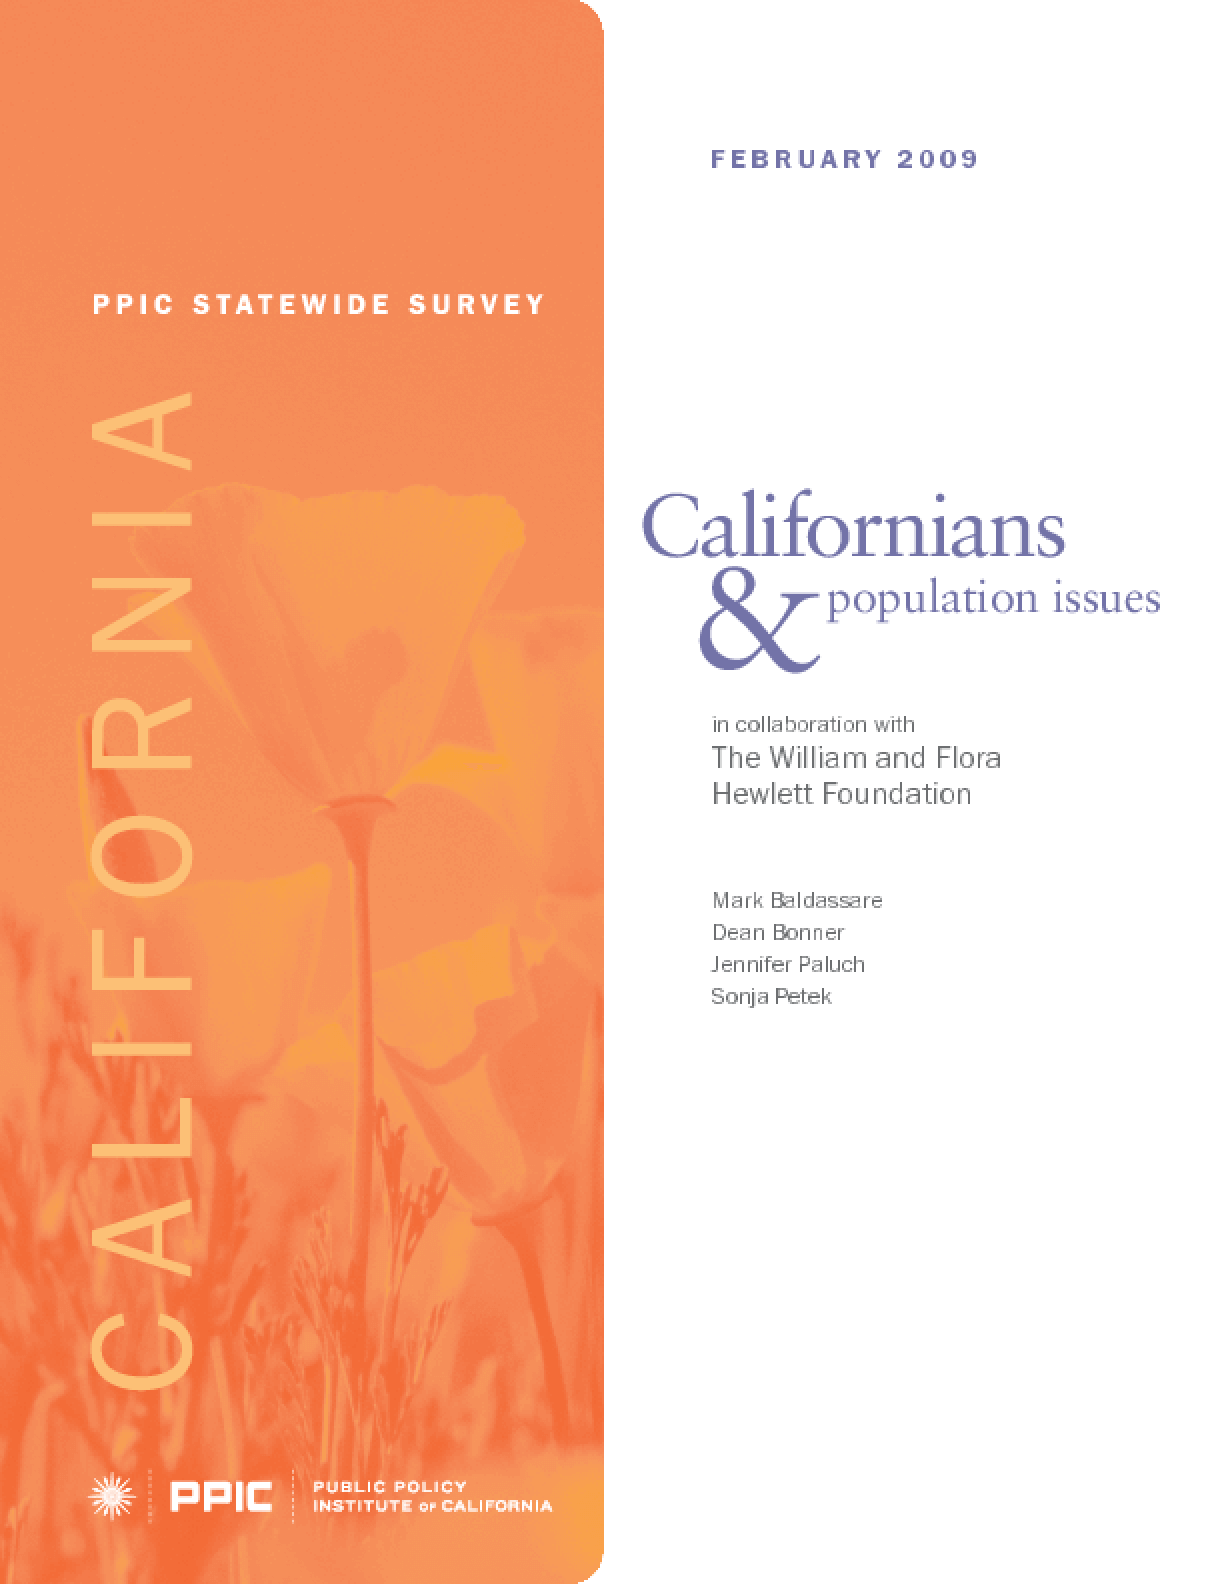 PPIC Statewide Survey: Californians and Population Issues